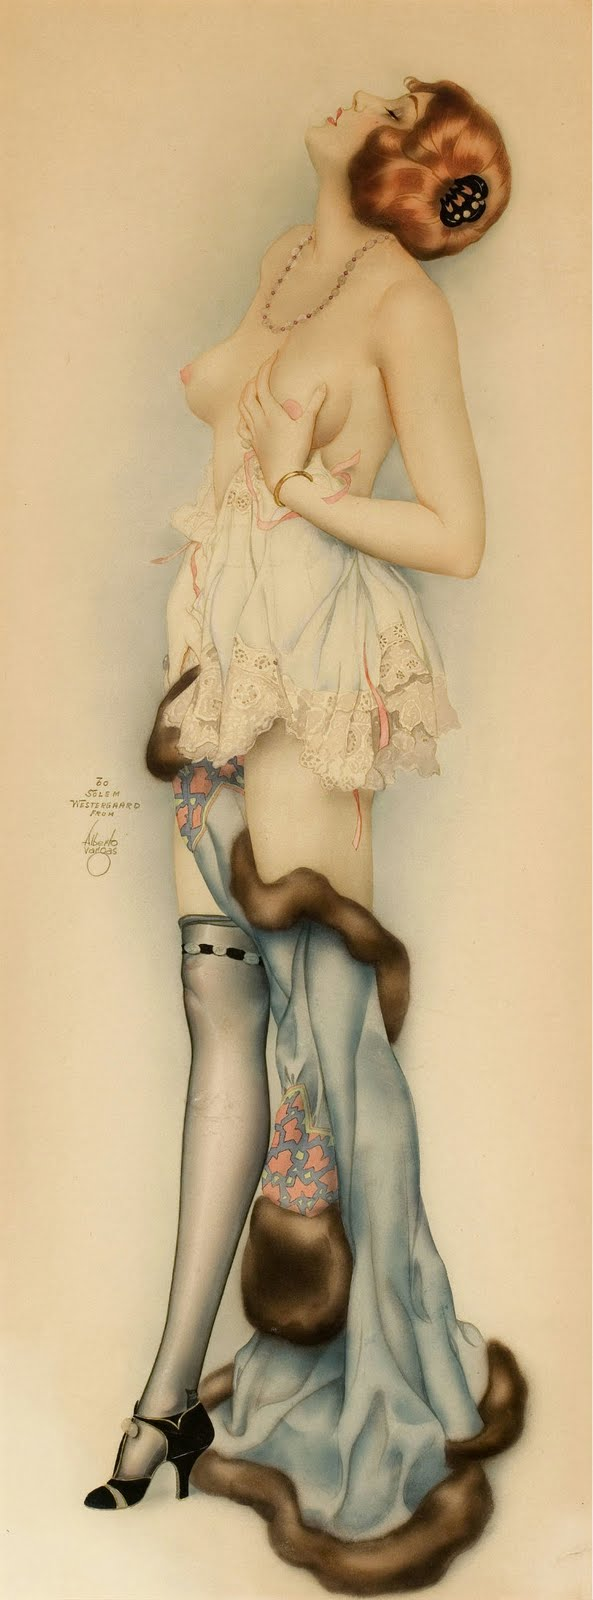 alberto vargas illustration